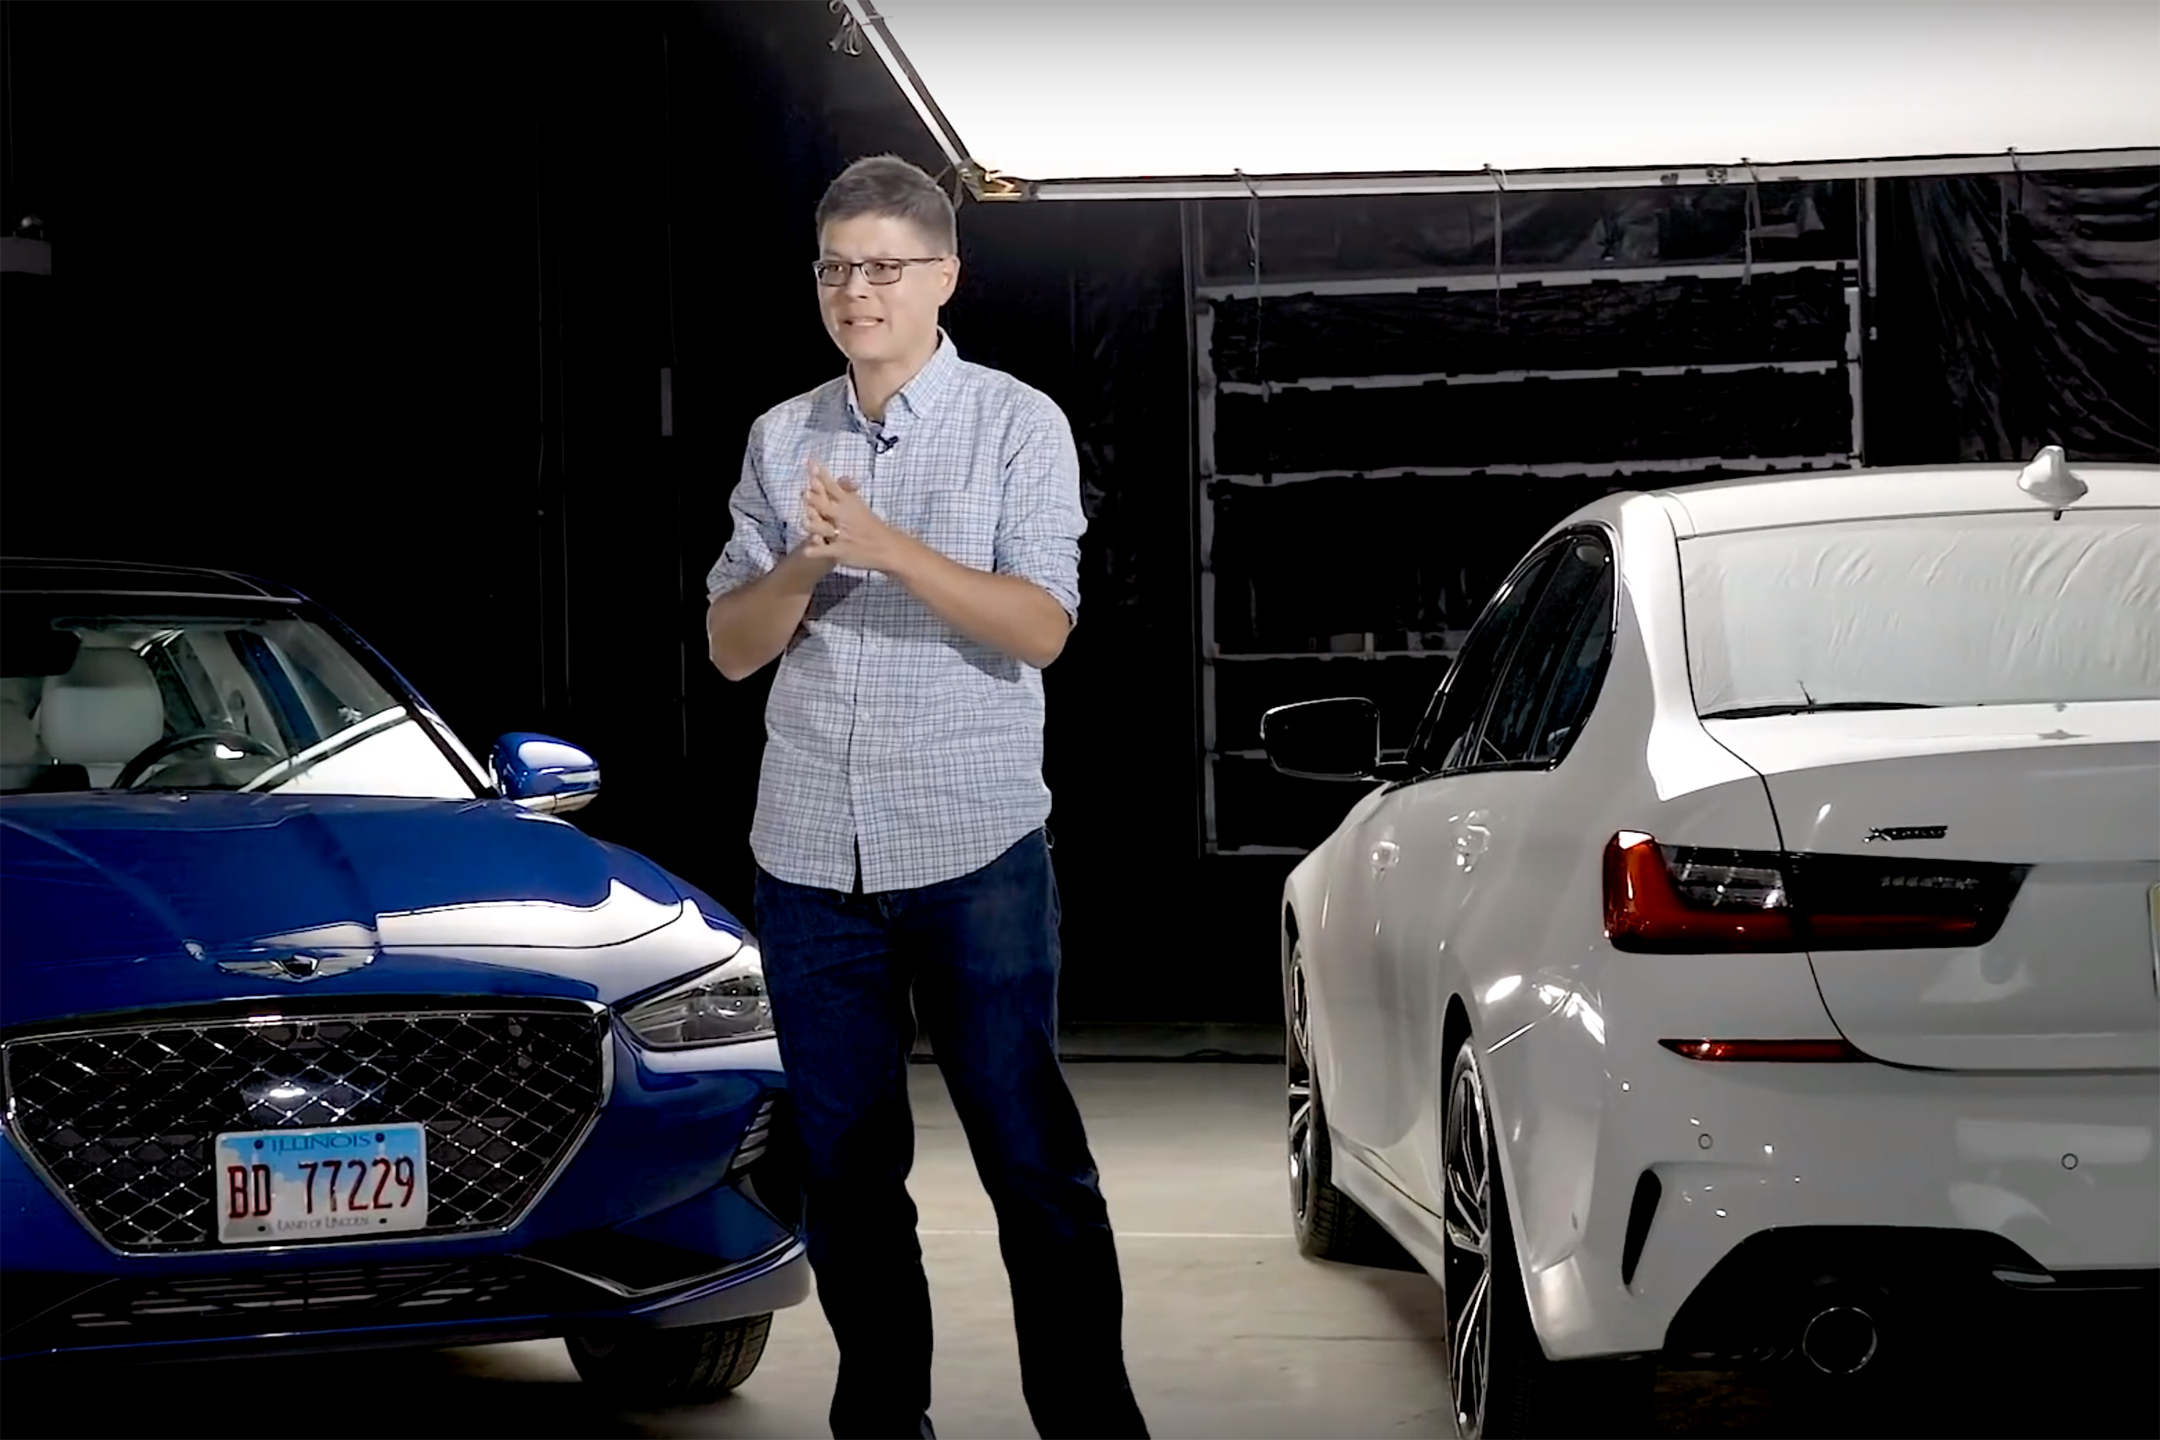 Genesis G70 Vs. BMW 3 Series Video: Luxury Sports Sedan Smackdown